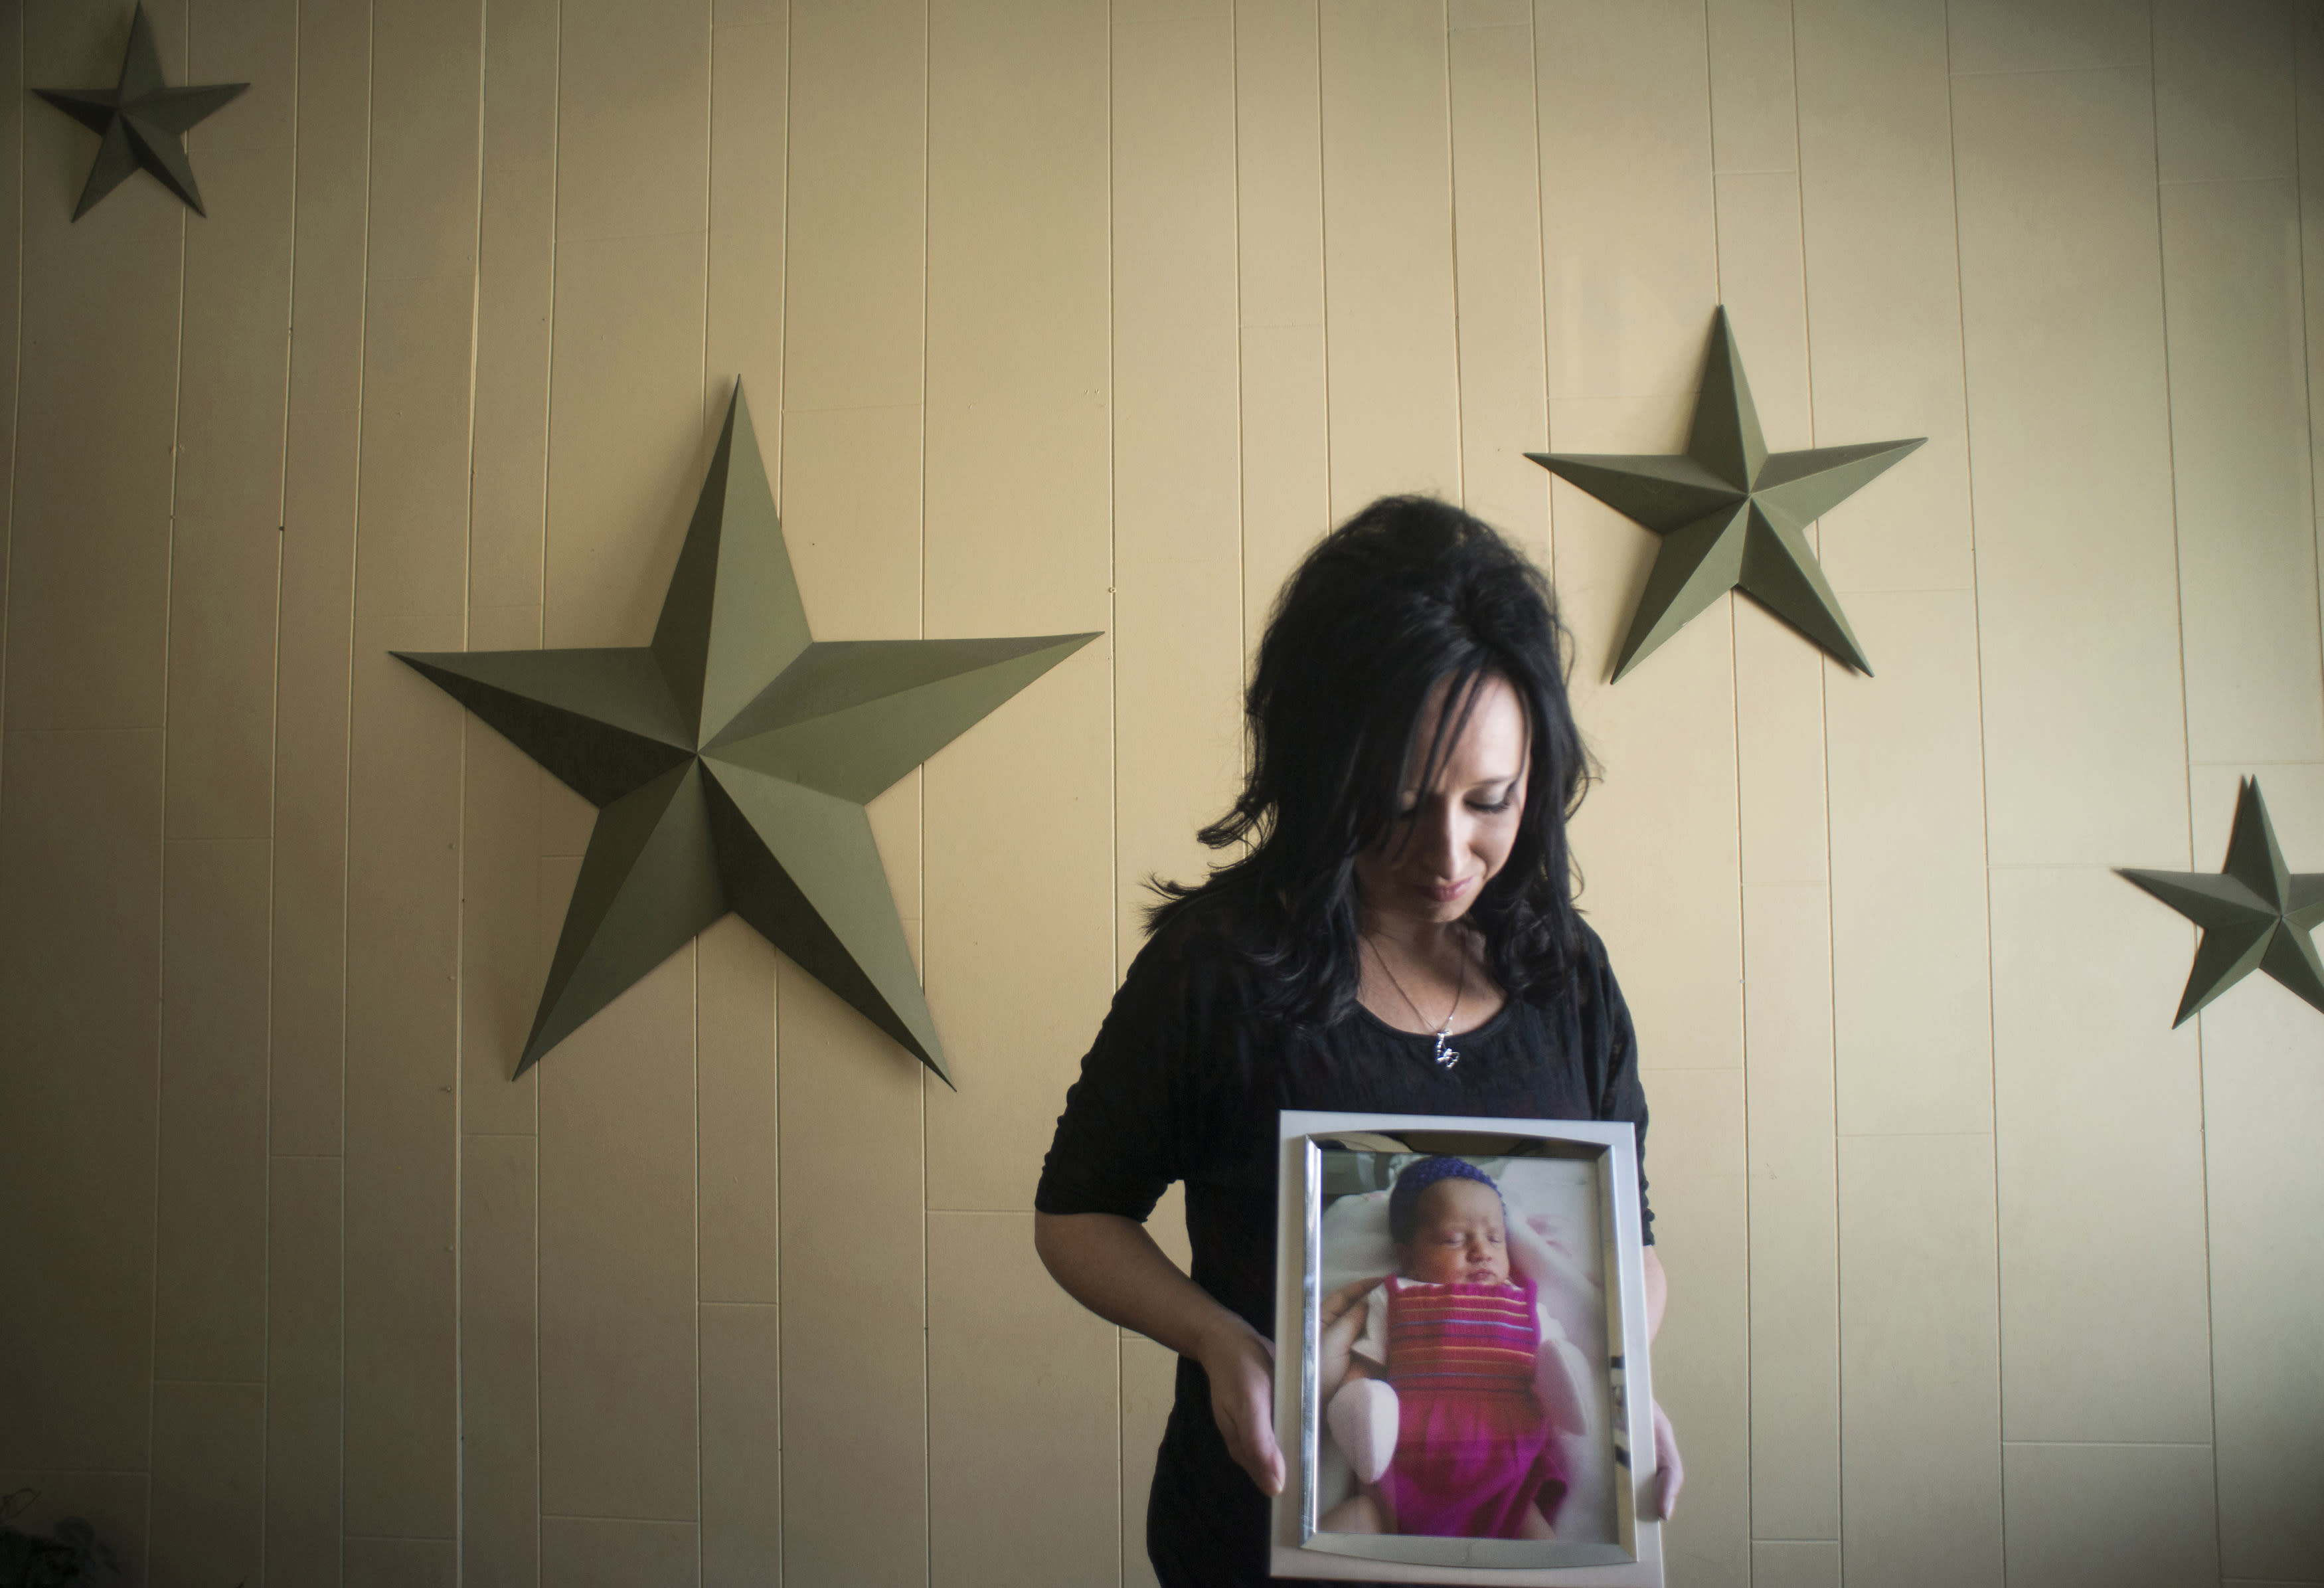 AP IMPACT: Abused kids die as officials fail to protect